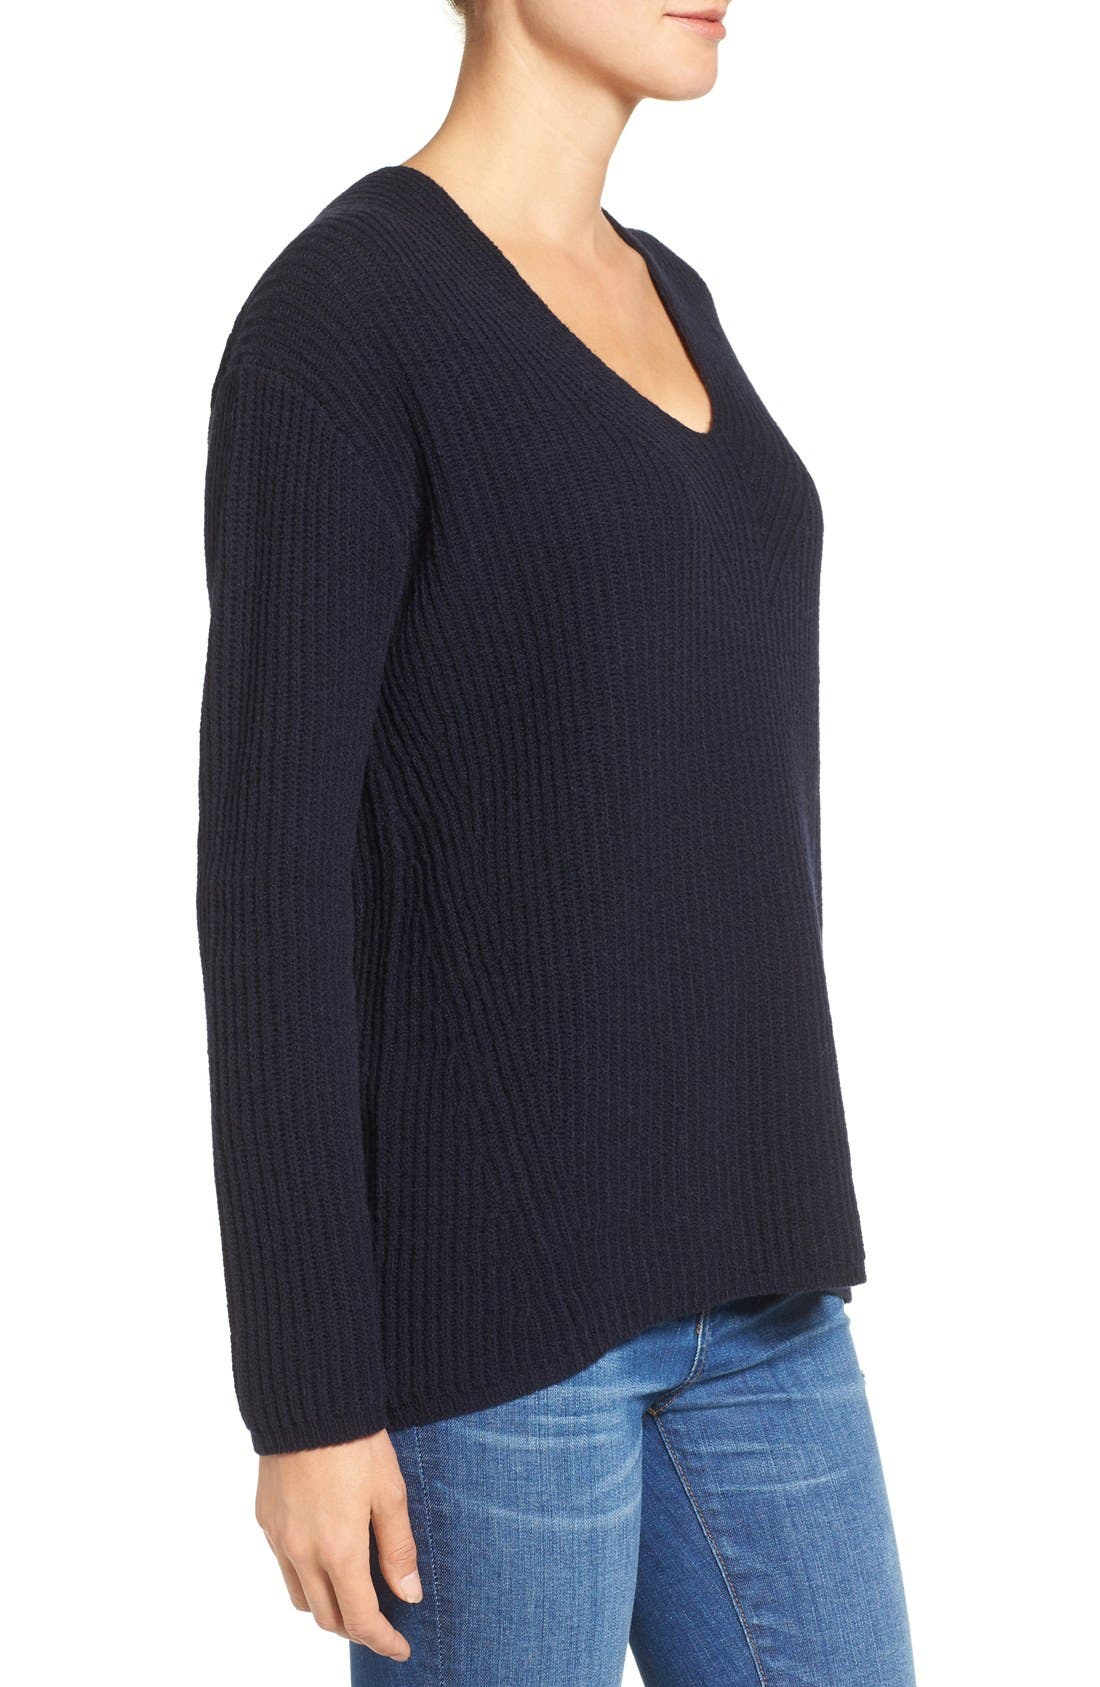 Woodside Pullover Sweater,                             Alternate thumbnail 21, color,